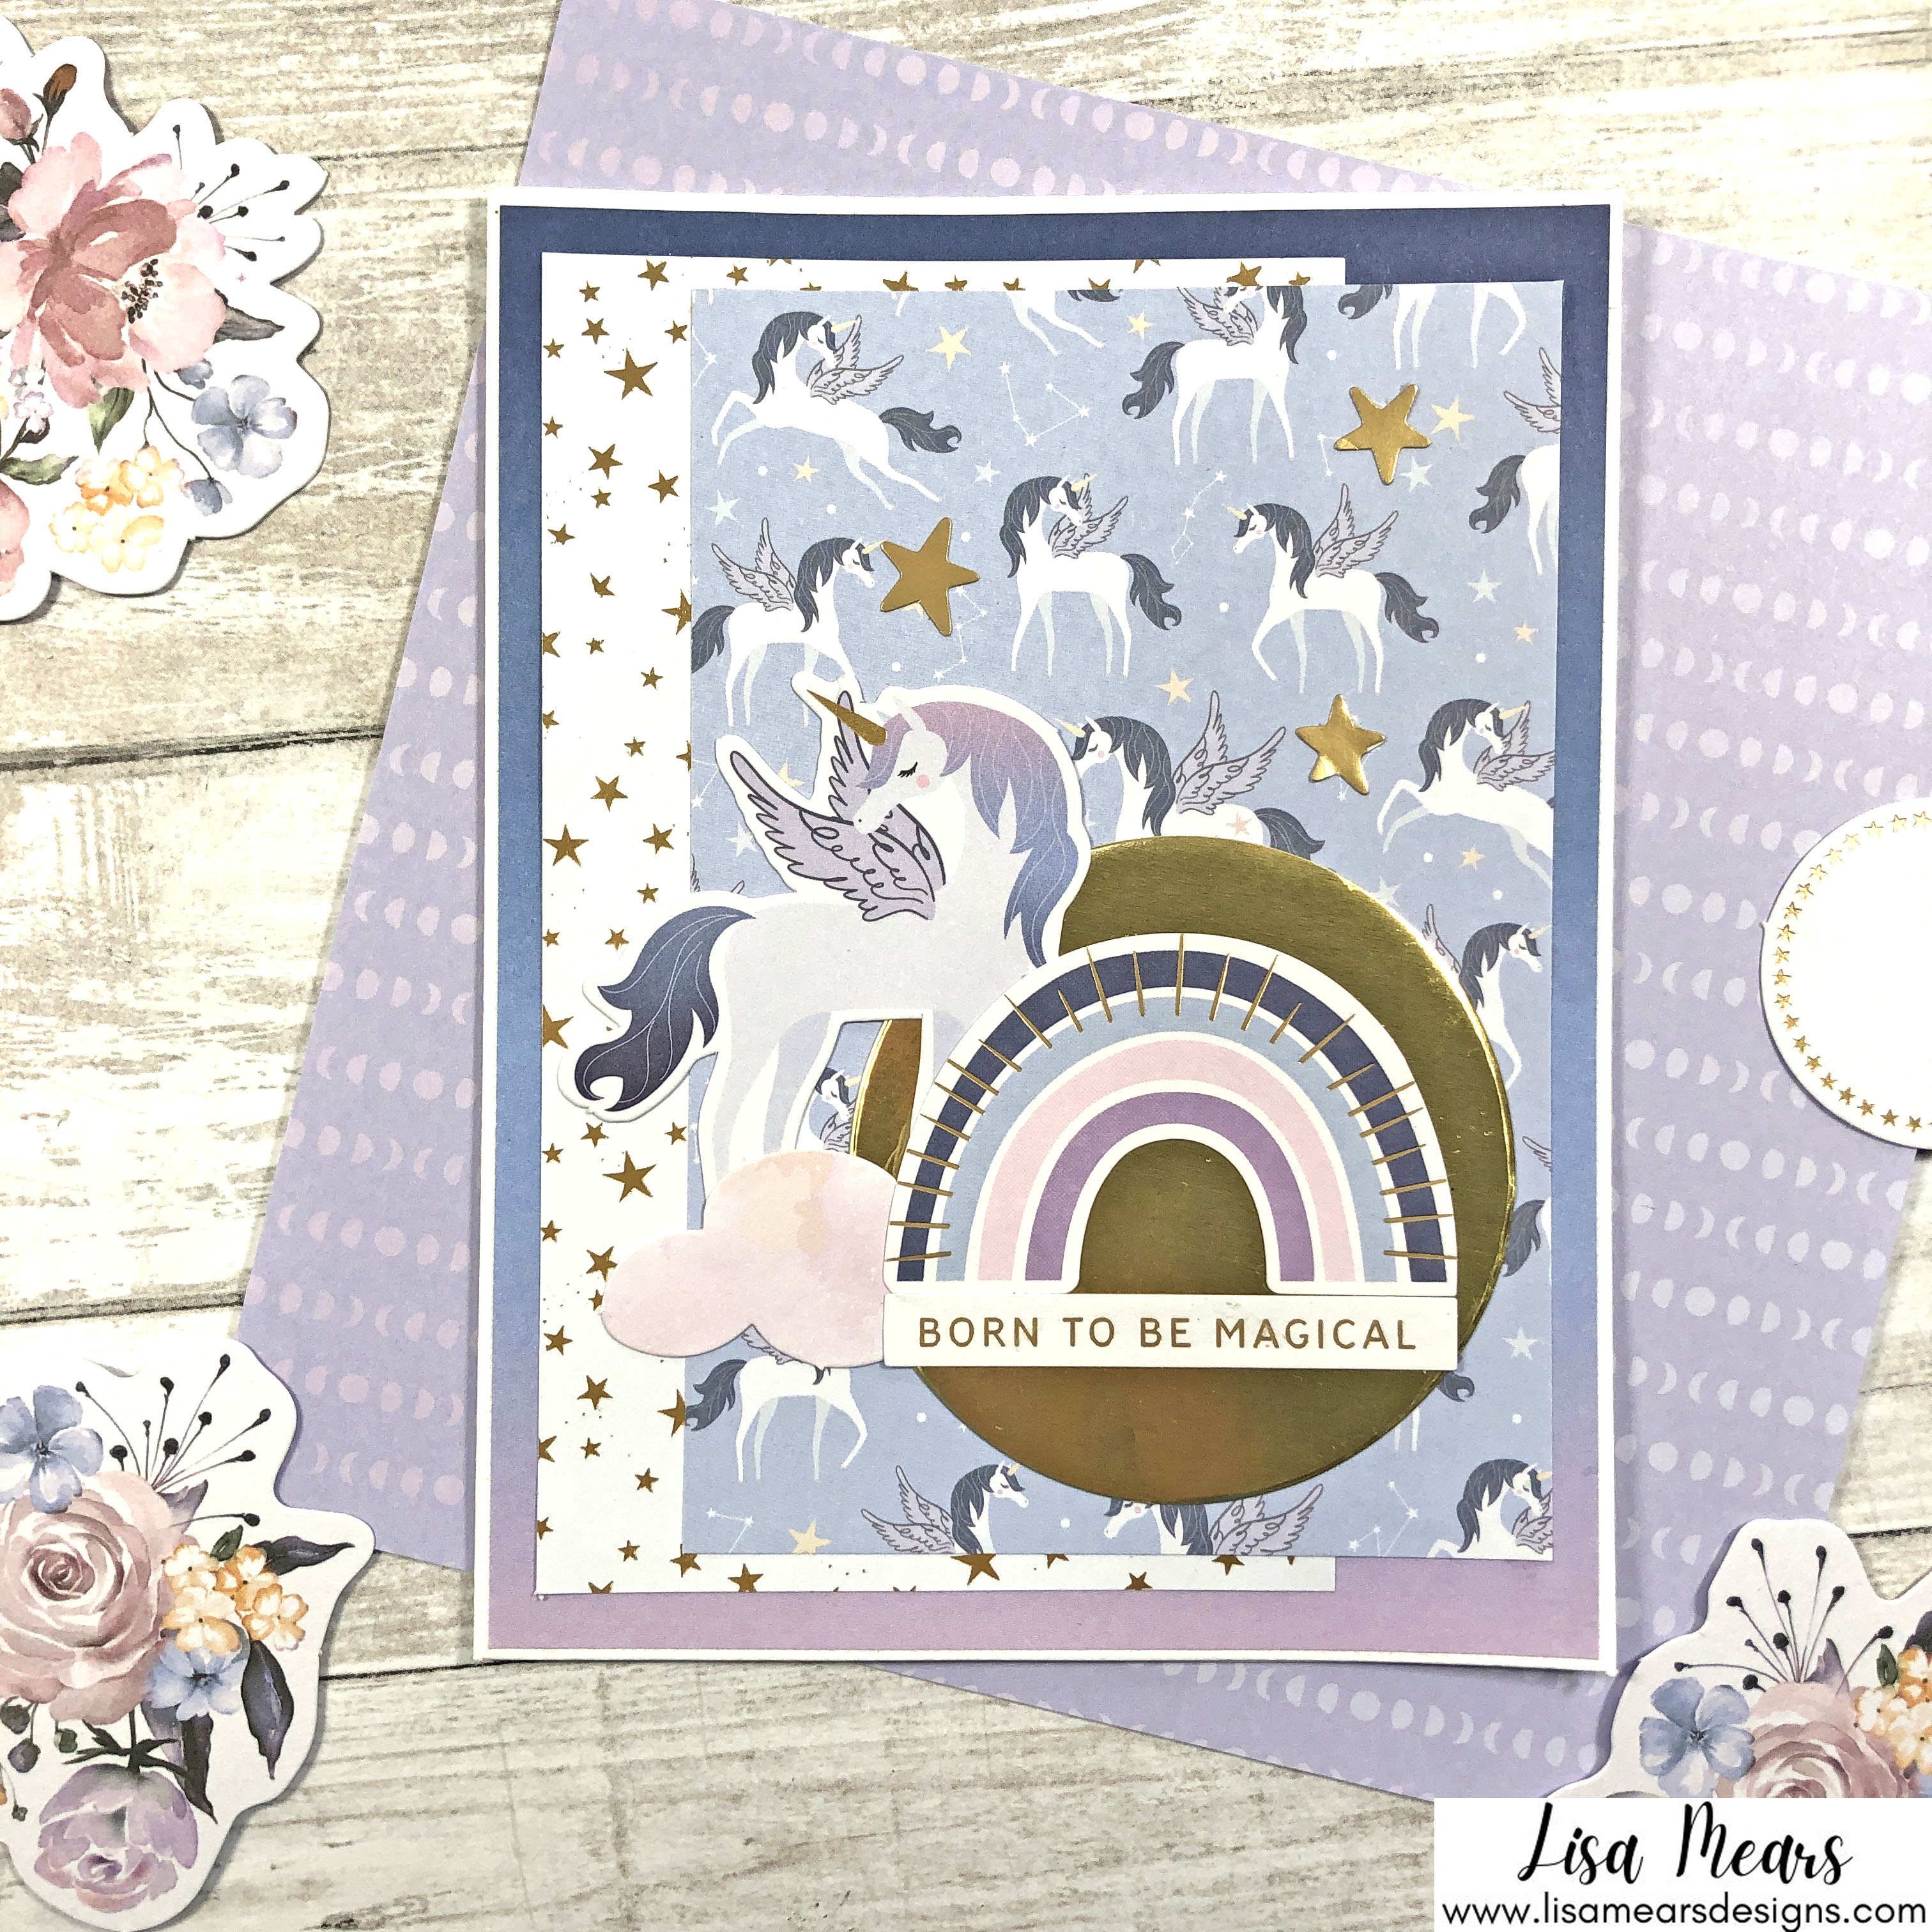 Spellbinders October 2021 Card Kit - You are Stellar! Card with Unicorn